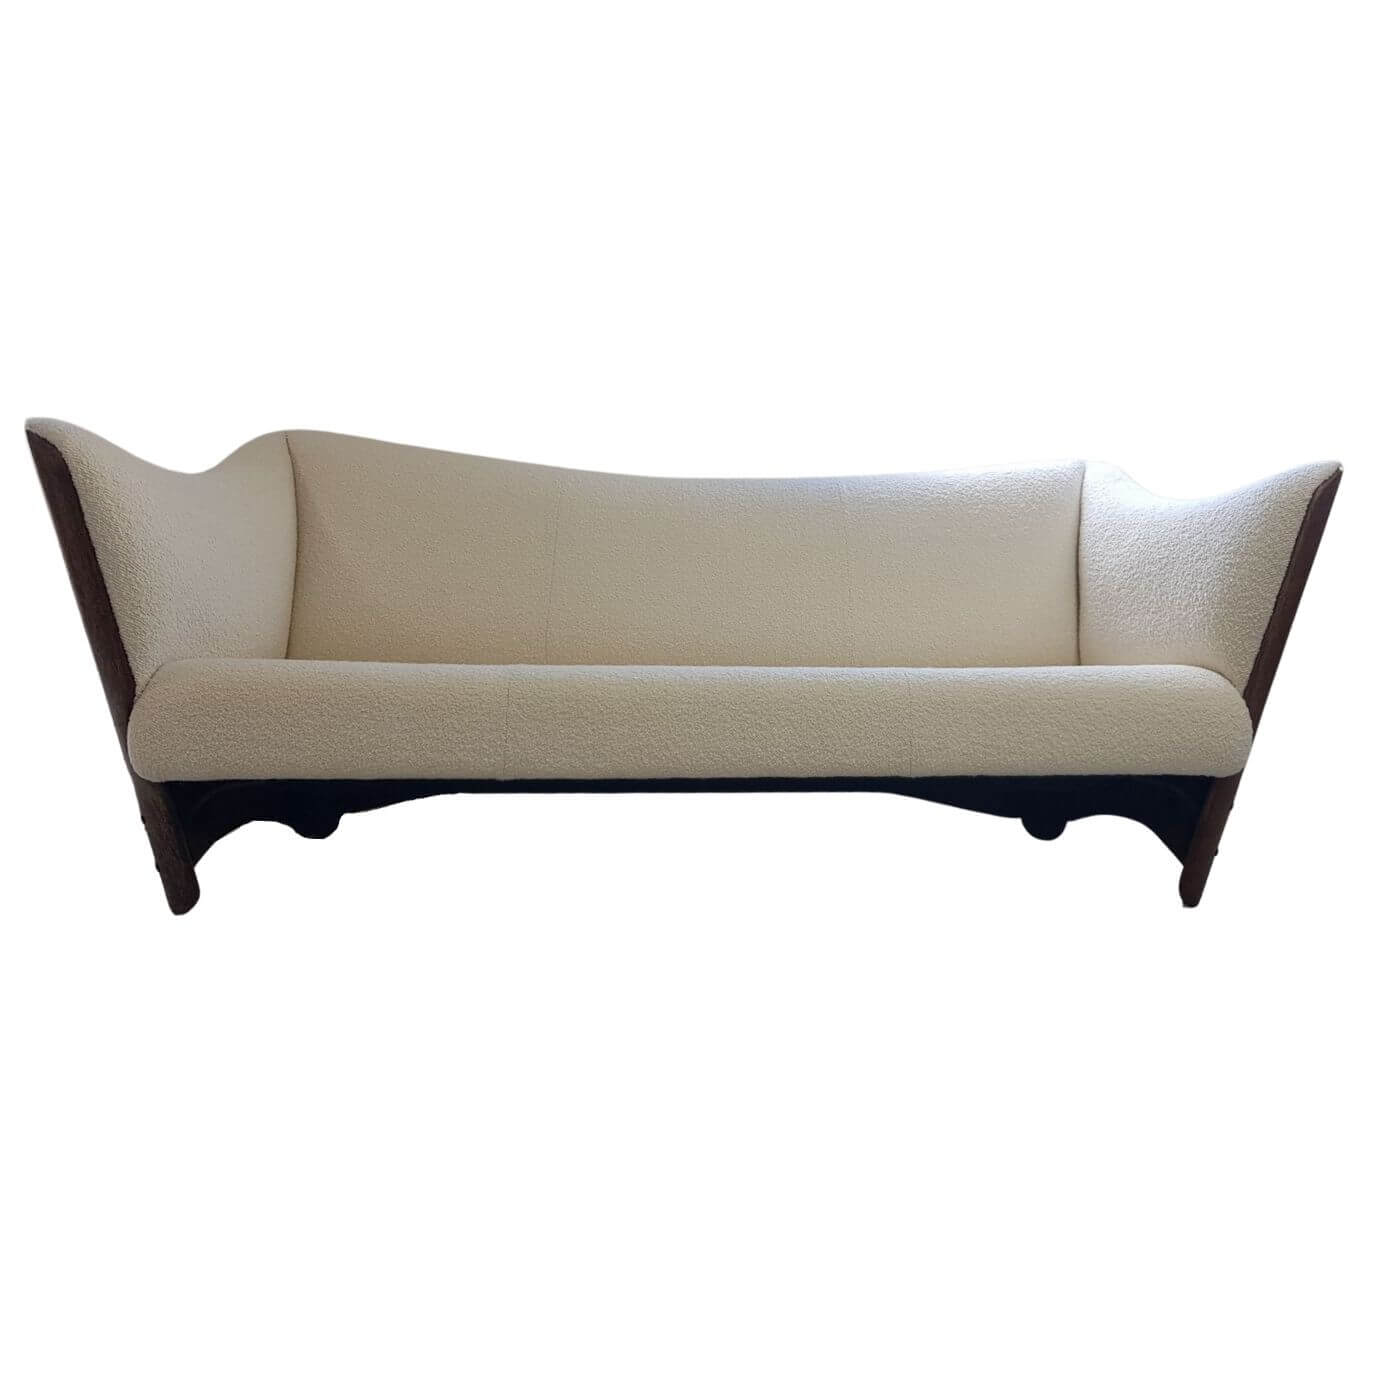 Pacific Green Cayenne sofa upholstered by Demuz